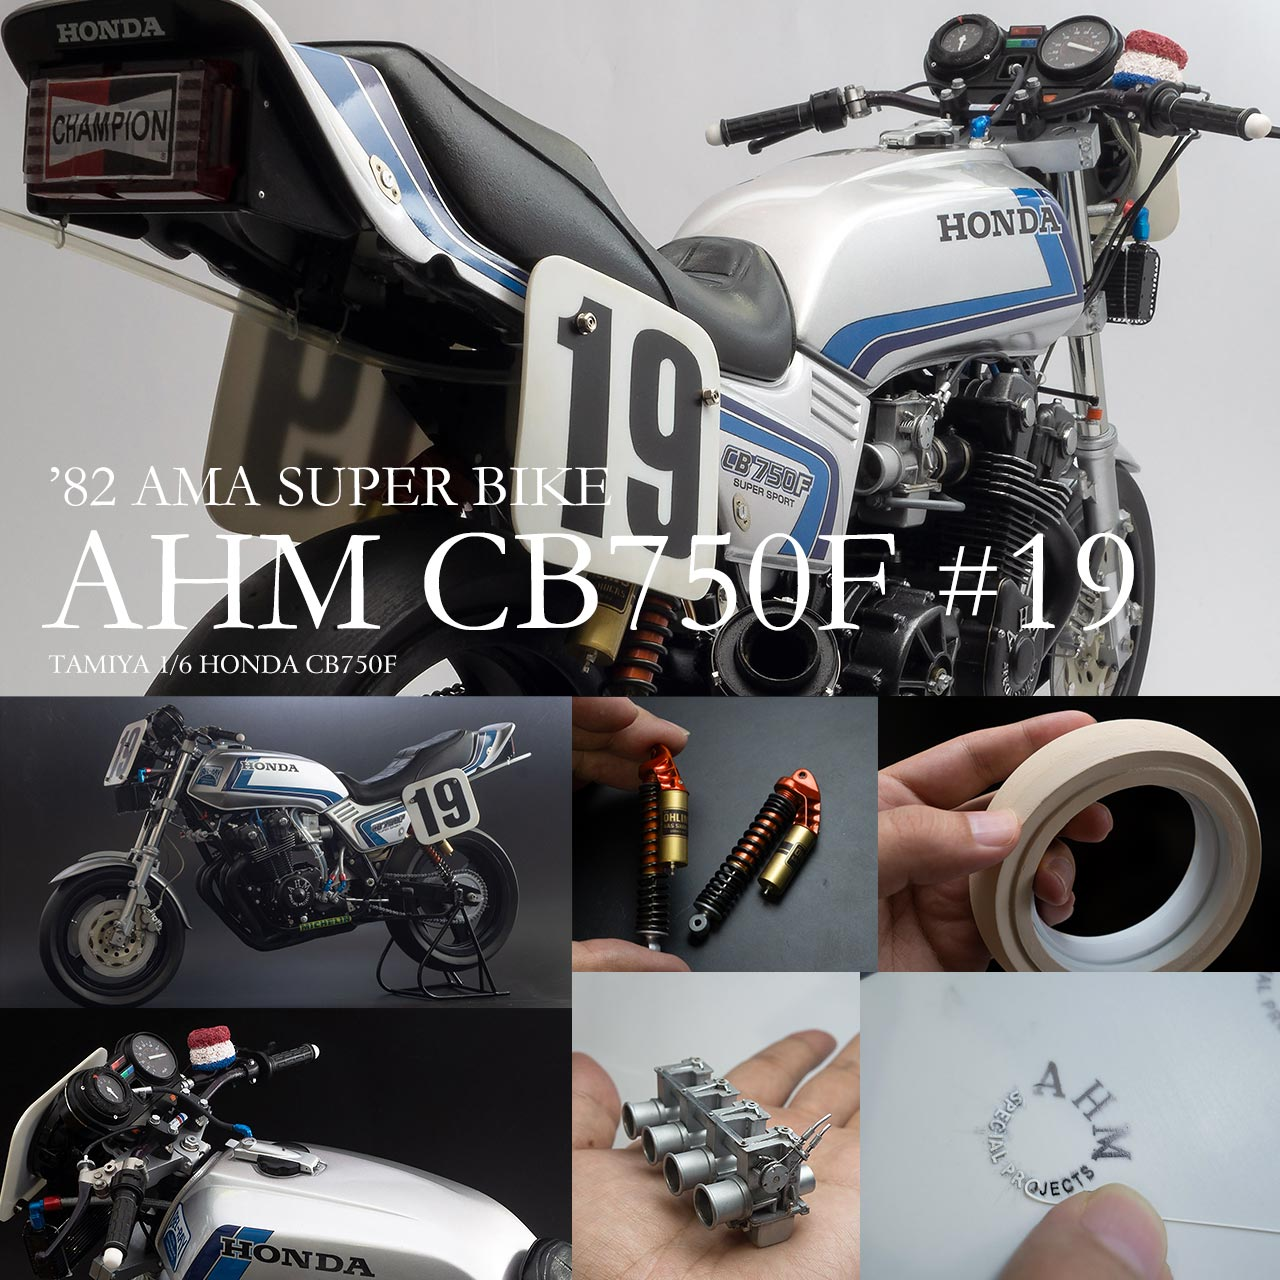 1/6 AHM CB750F '82 Freddie Spencer (Based on TAMIYA)[AHM CB750F フレディ・スペンサー]